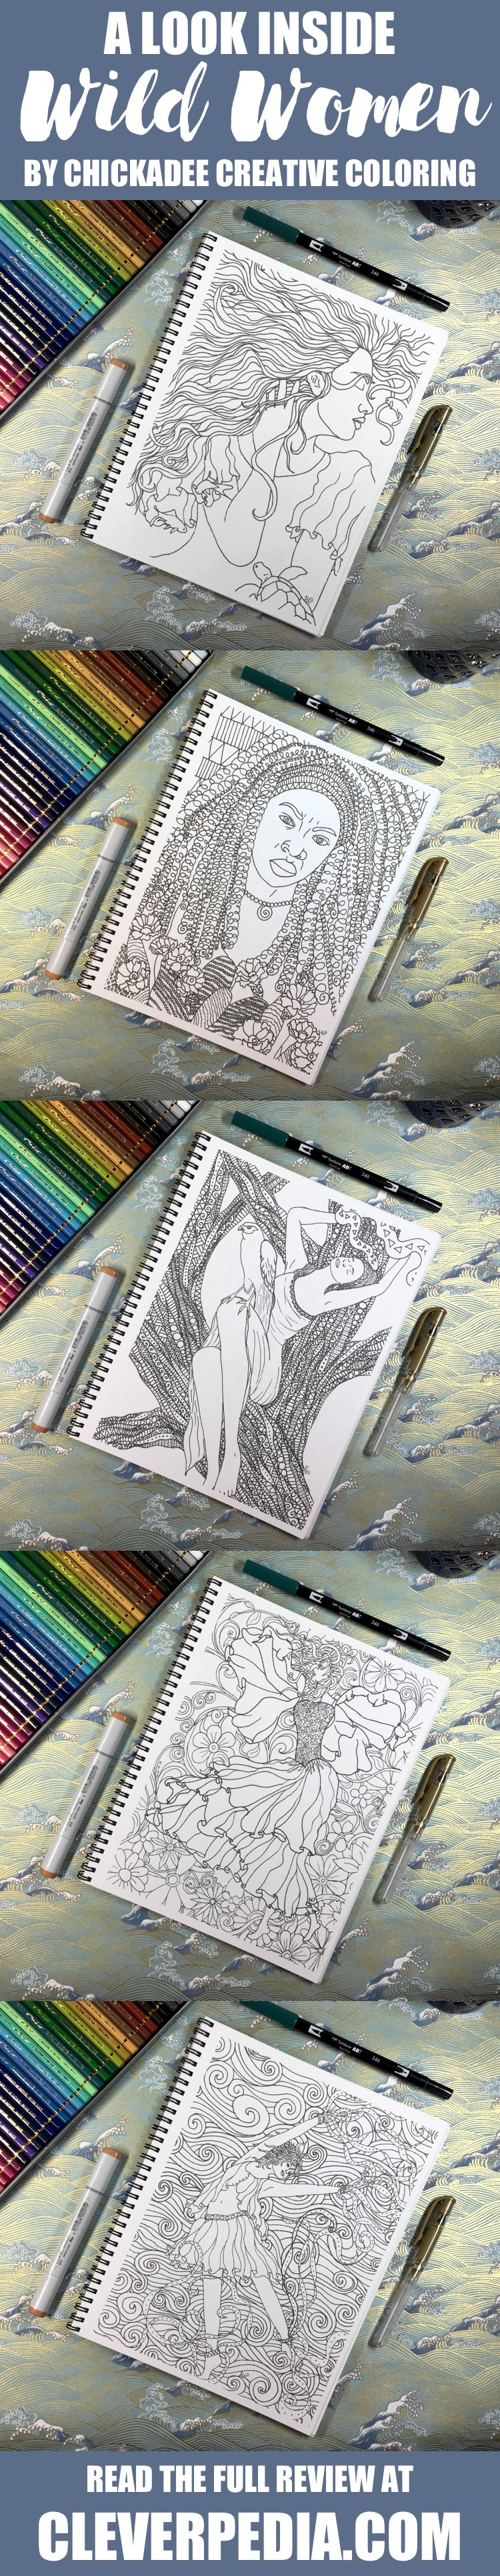 A Look Inside Wild Women An Adult Coloring Book By Chickadee Creative This